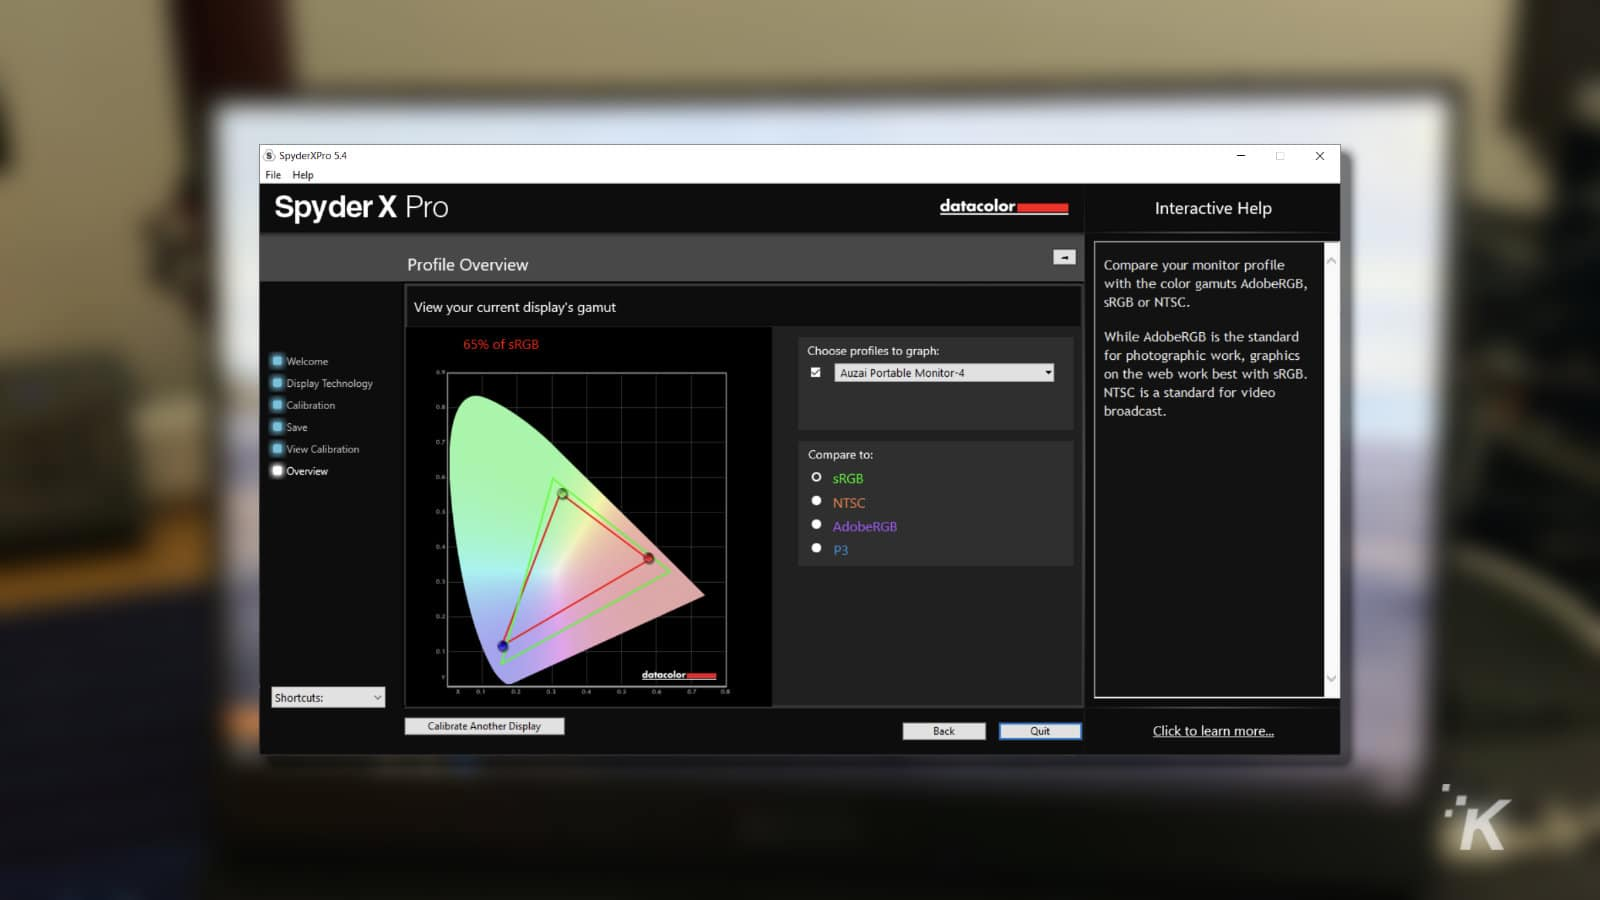 spyder x pro stats for monitor